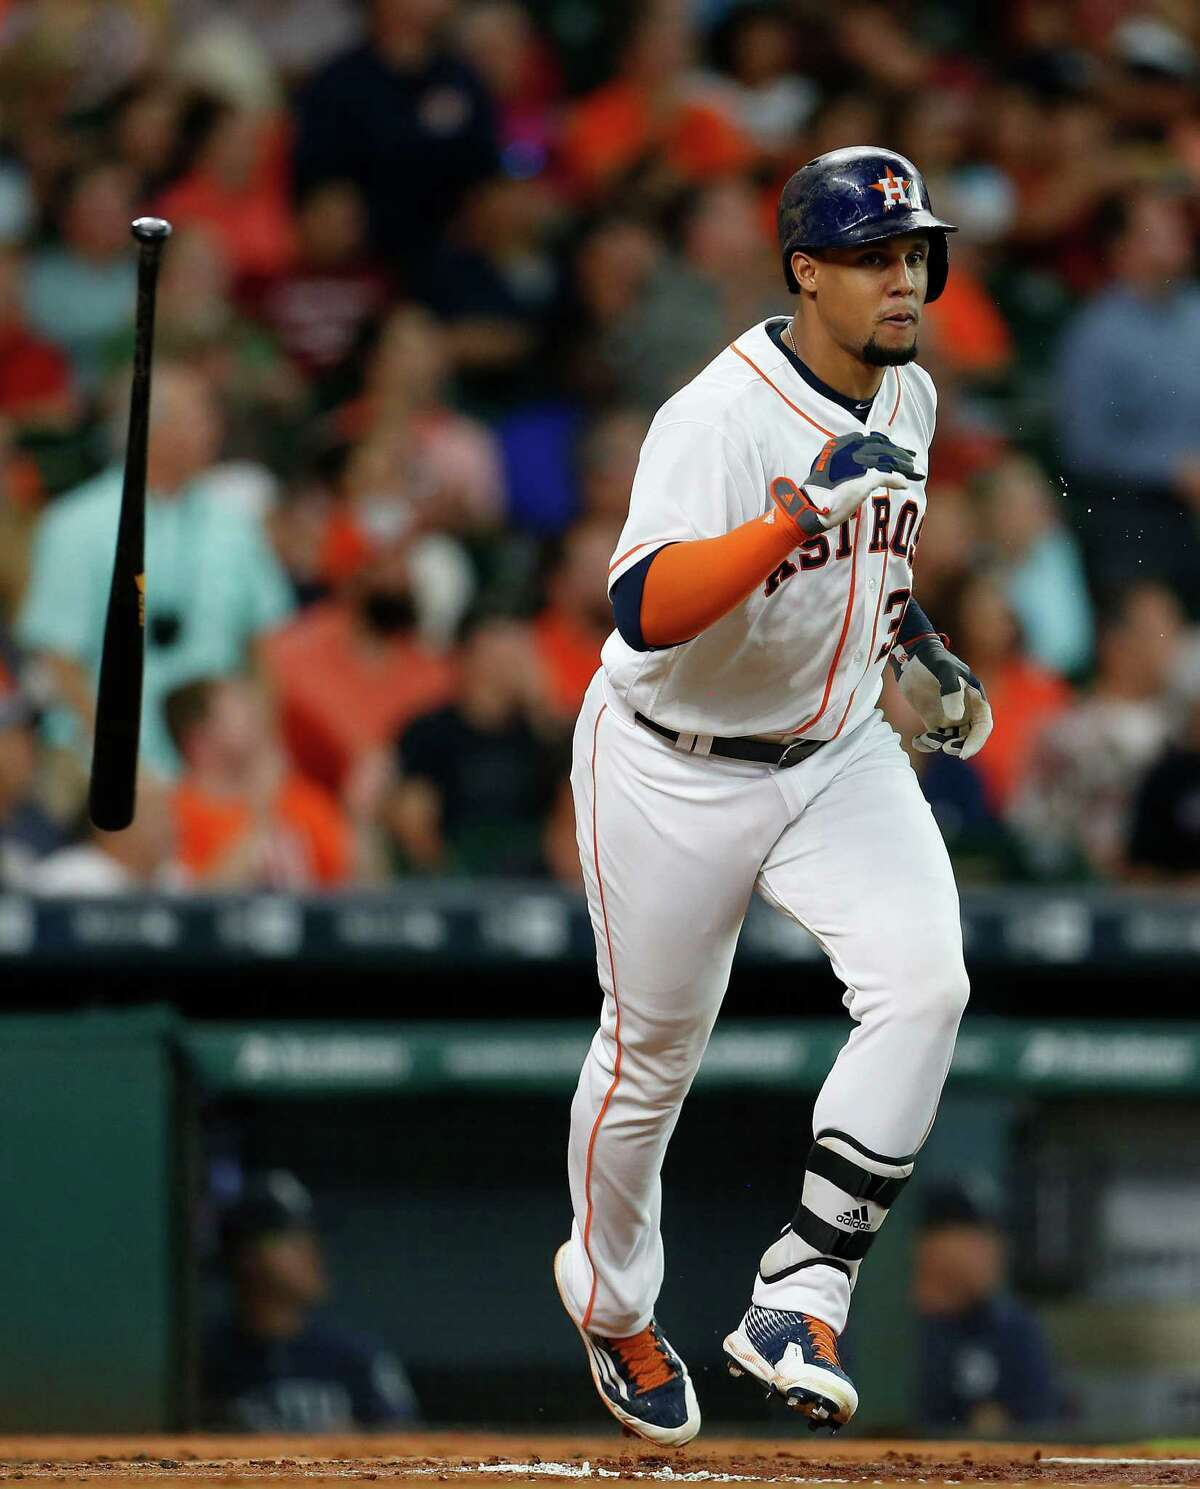 Houston Astros center fielder Carlos Gomez (30) flips his bat after hitting his RBI double during the first inning of an MLB baseball game at Minute Maid Park, Wednesday, July 6, 2016, in Houston. ( Karen Warren / Houston Chronicle )